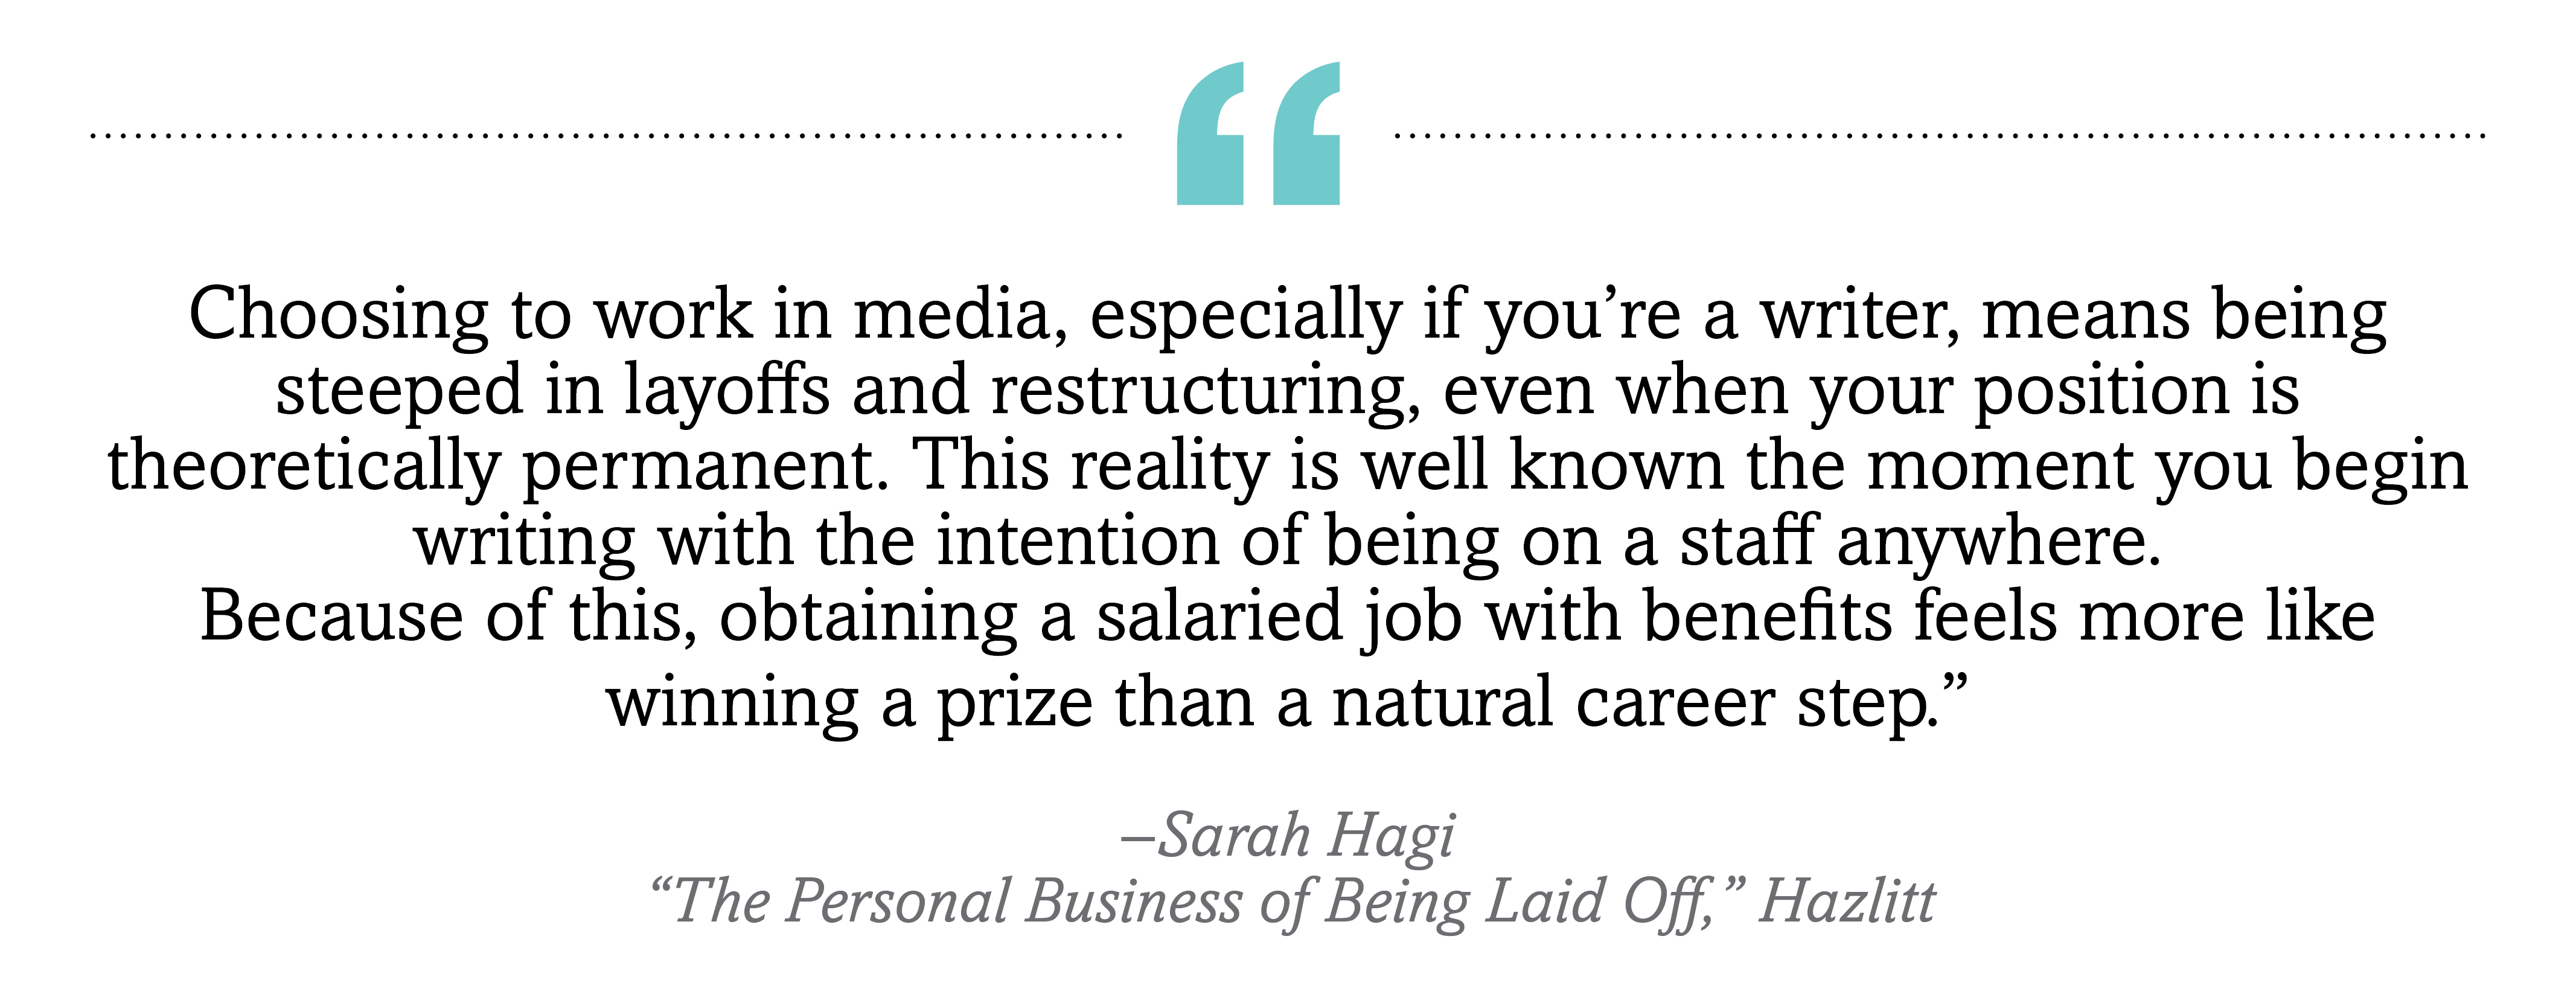 """Choosing to work in media, especially if you're a writer, means being steeped in layoffs and restructuring, even when your position is theoretically permanent. This reality is well known the moment you begin writing with the intention of being on a staff anywhere. Because of this, obtaining a salaried job with benefits feels more like winning a prize than a natural career step."""